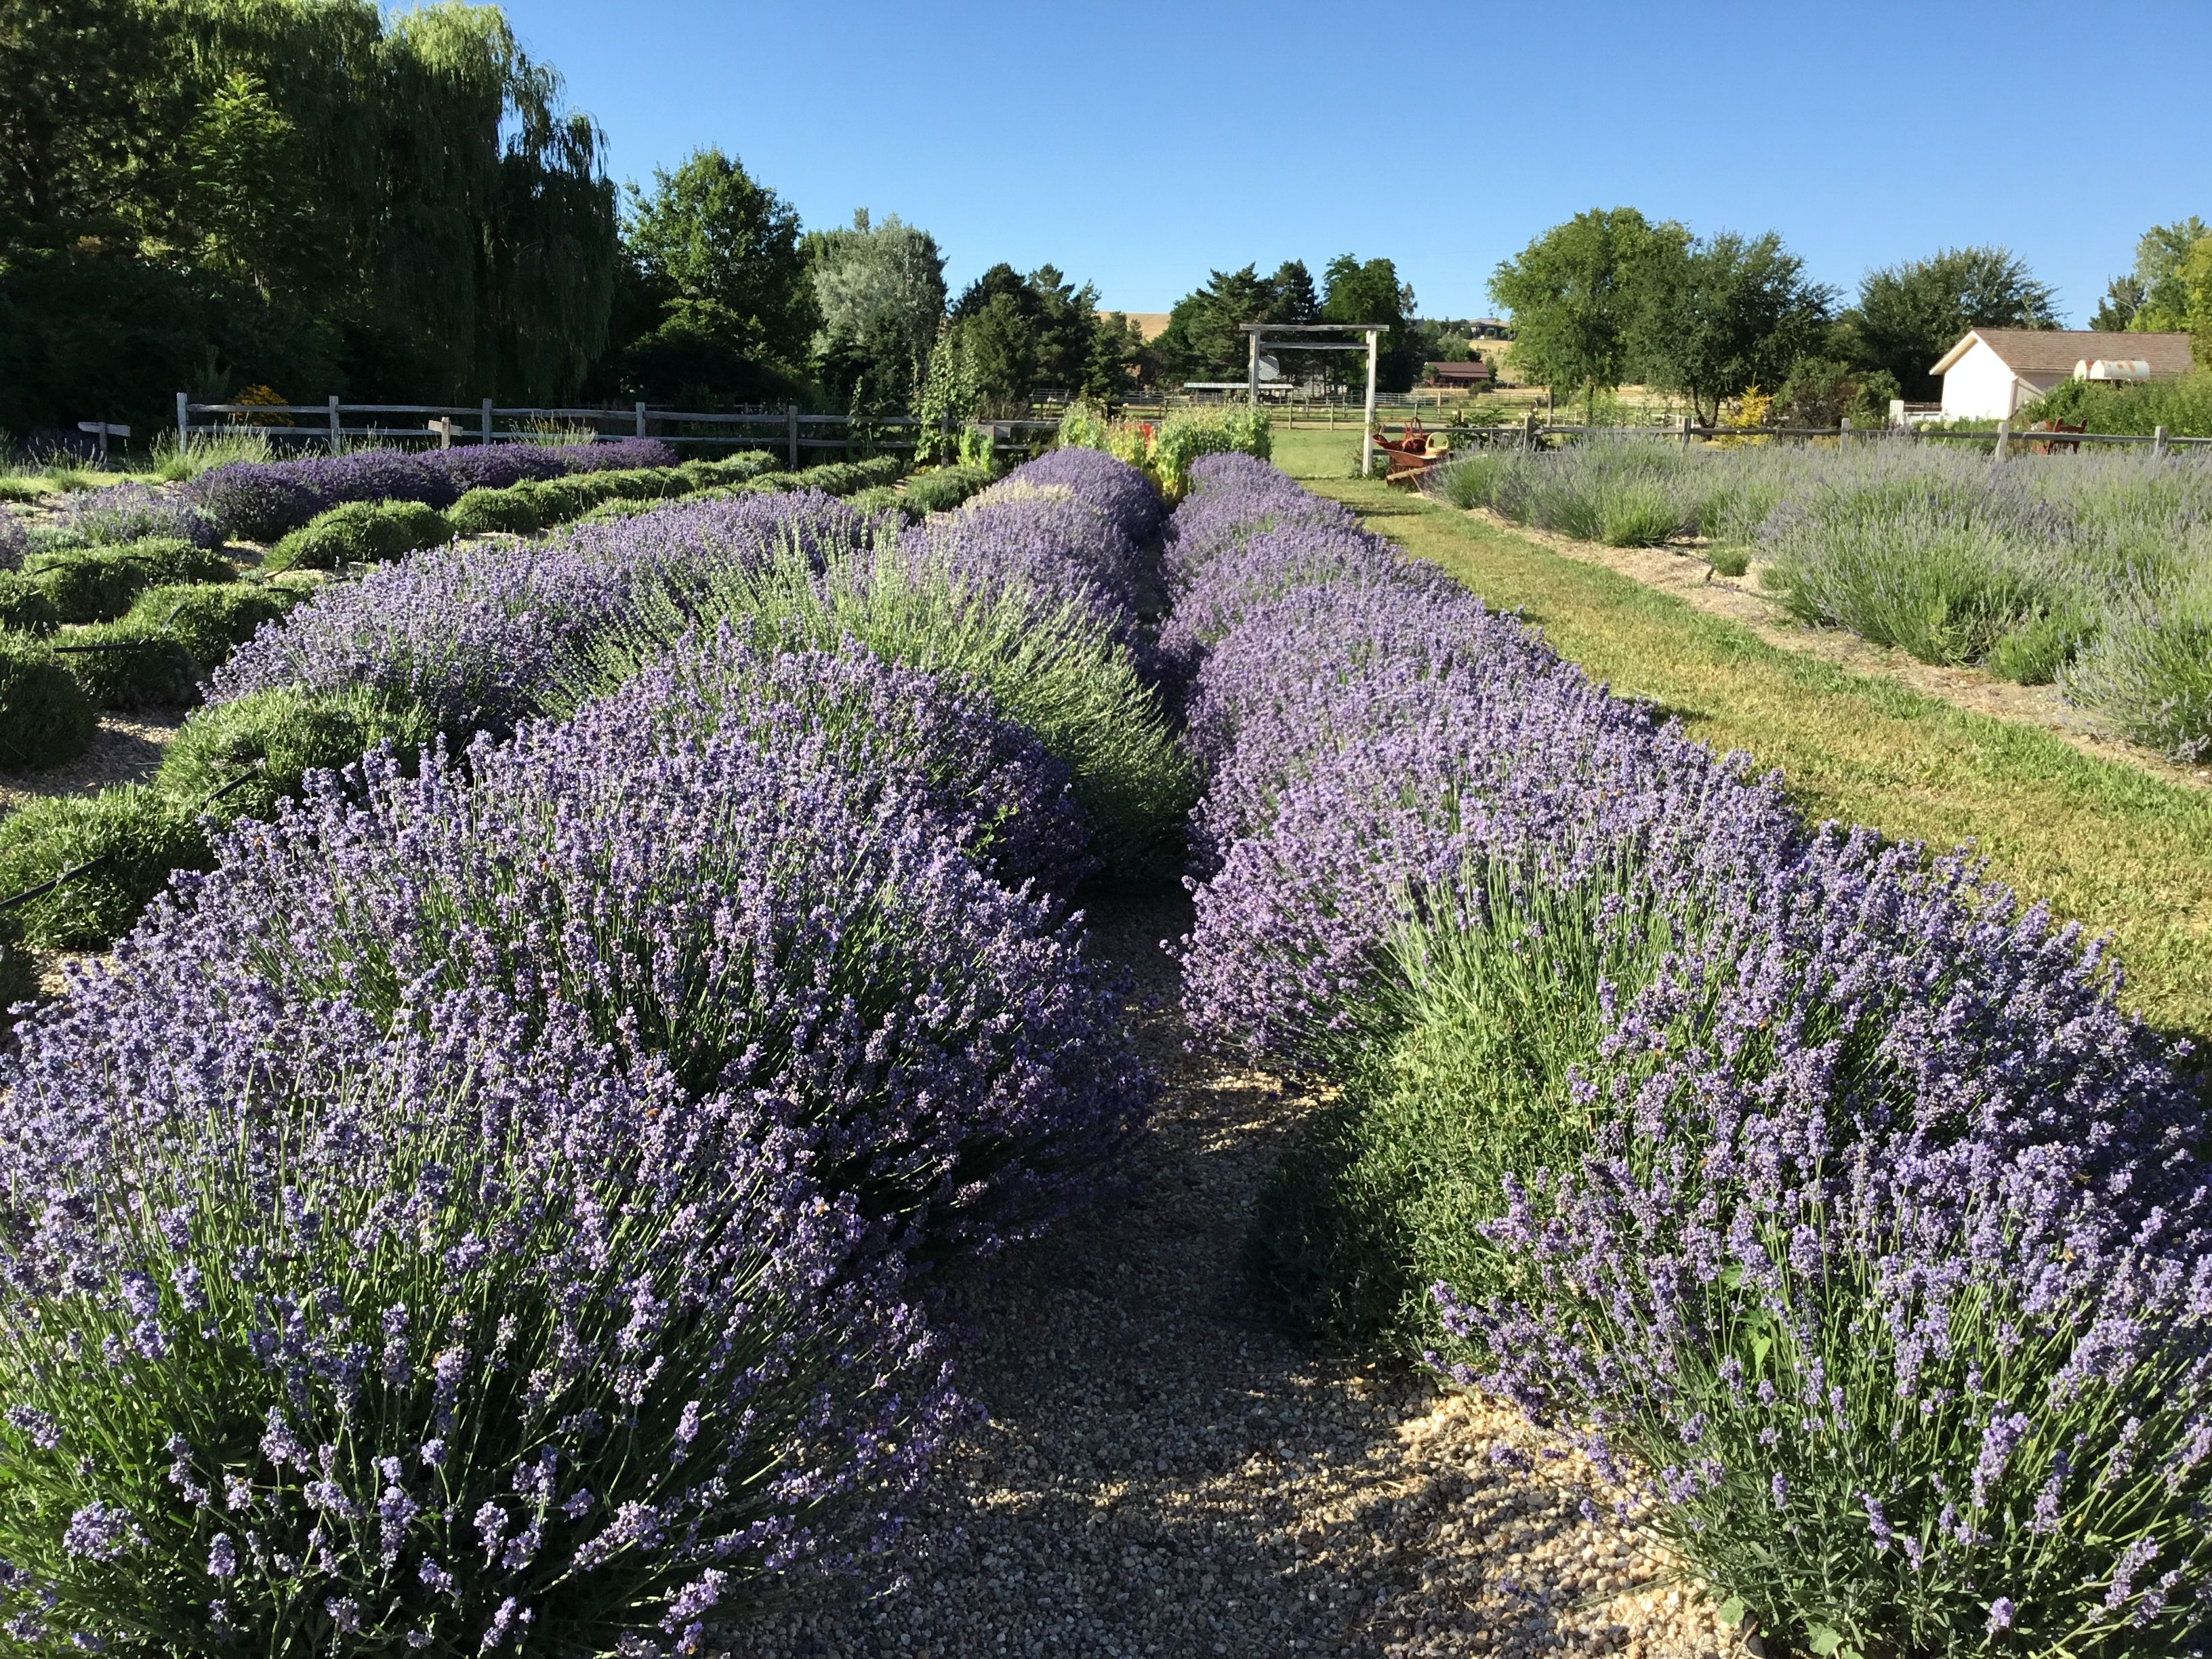 Things To Do In Eagle Idaho Red Chair Lavender Farm U Pick Lavender Down The Road Landscape Photos Lavender Farm Landscape